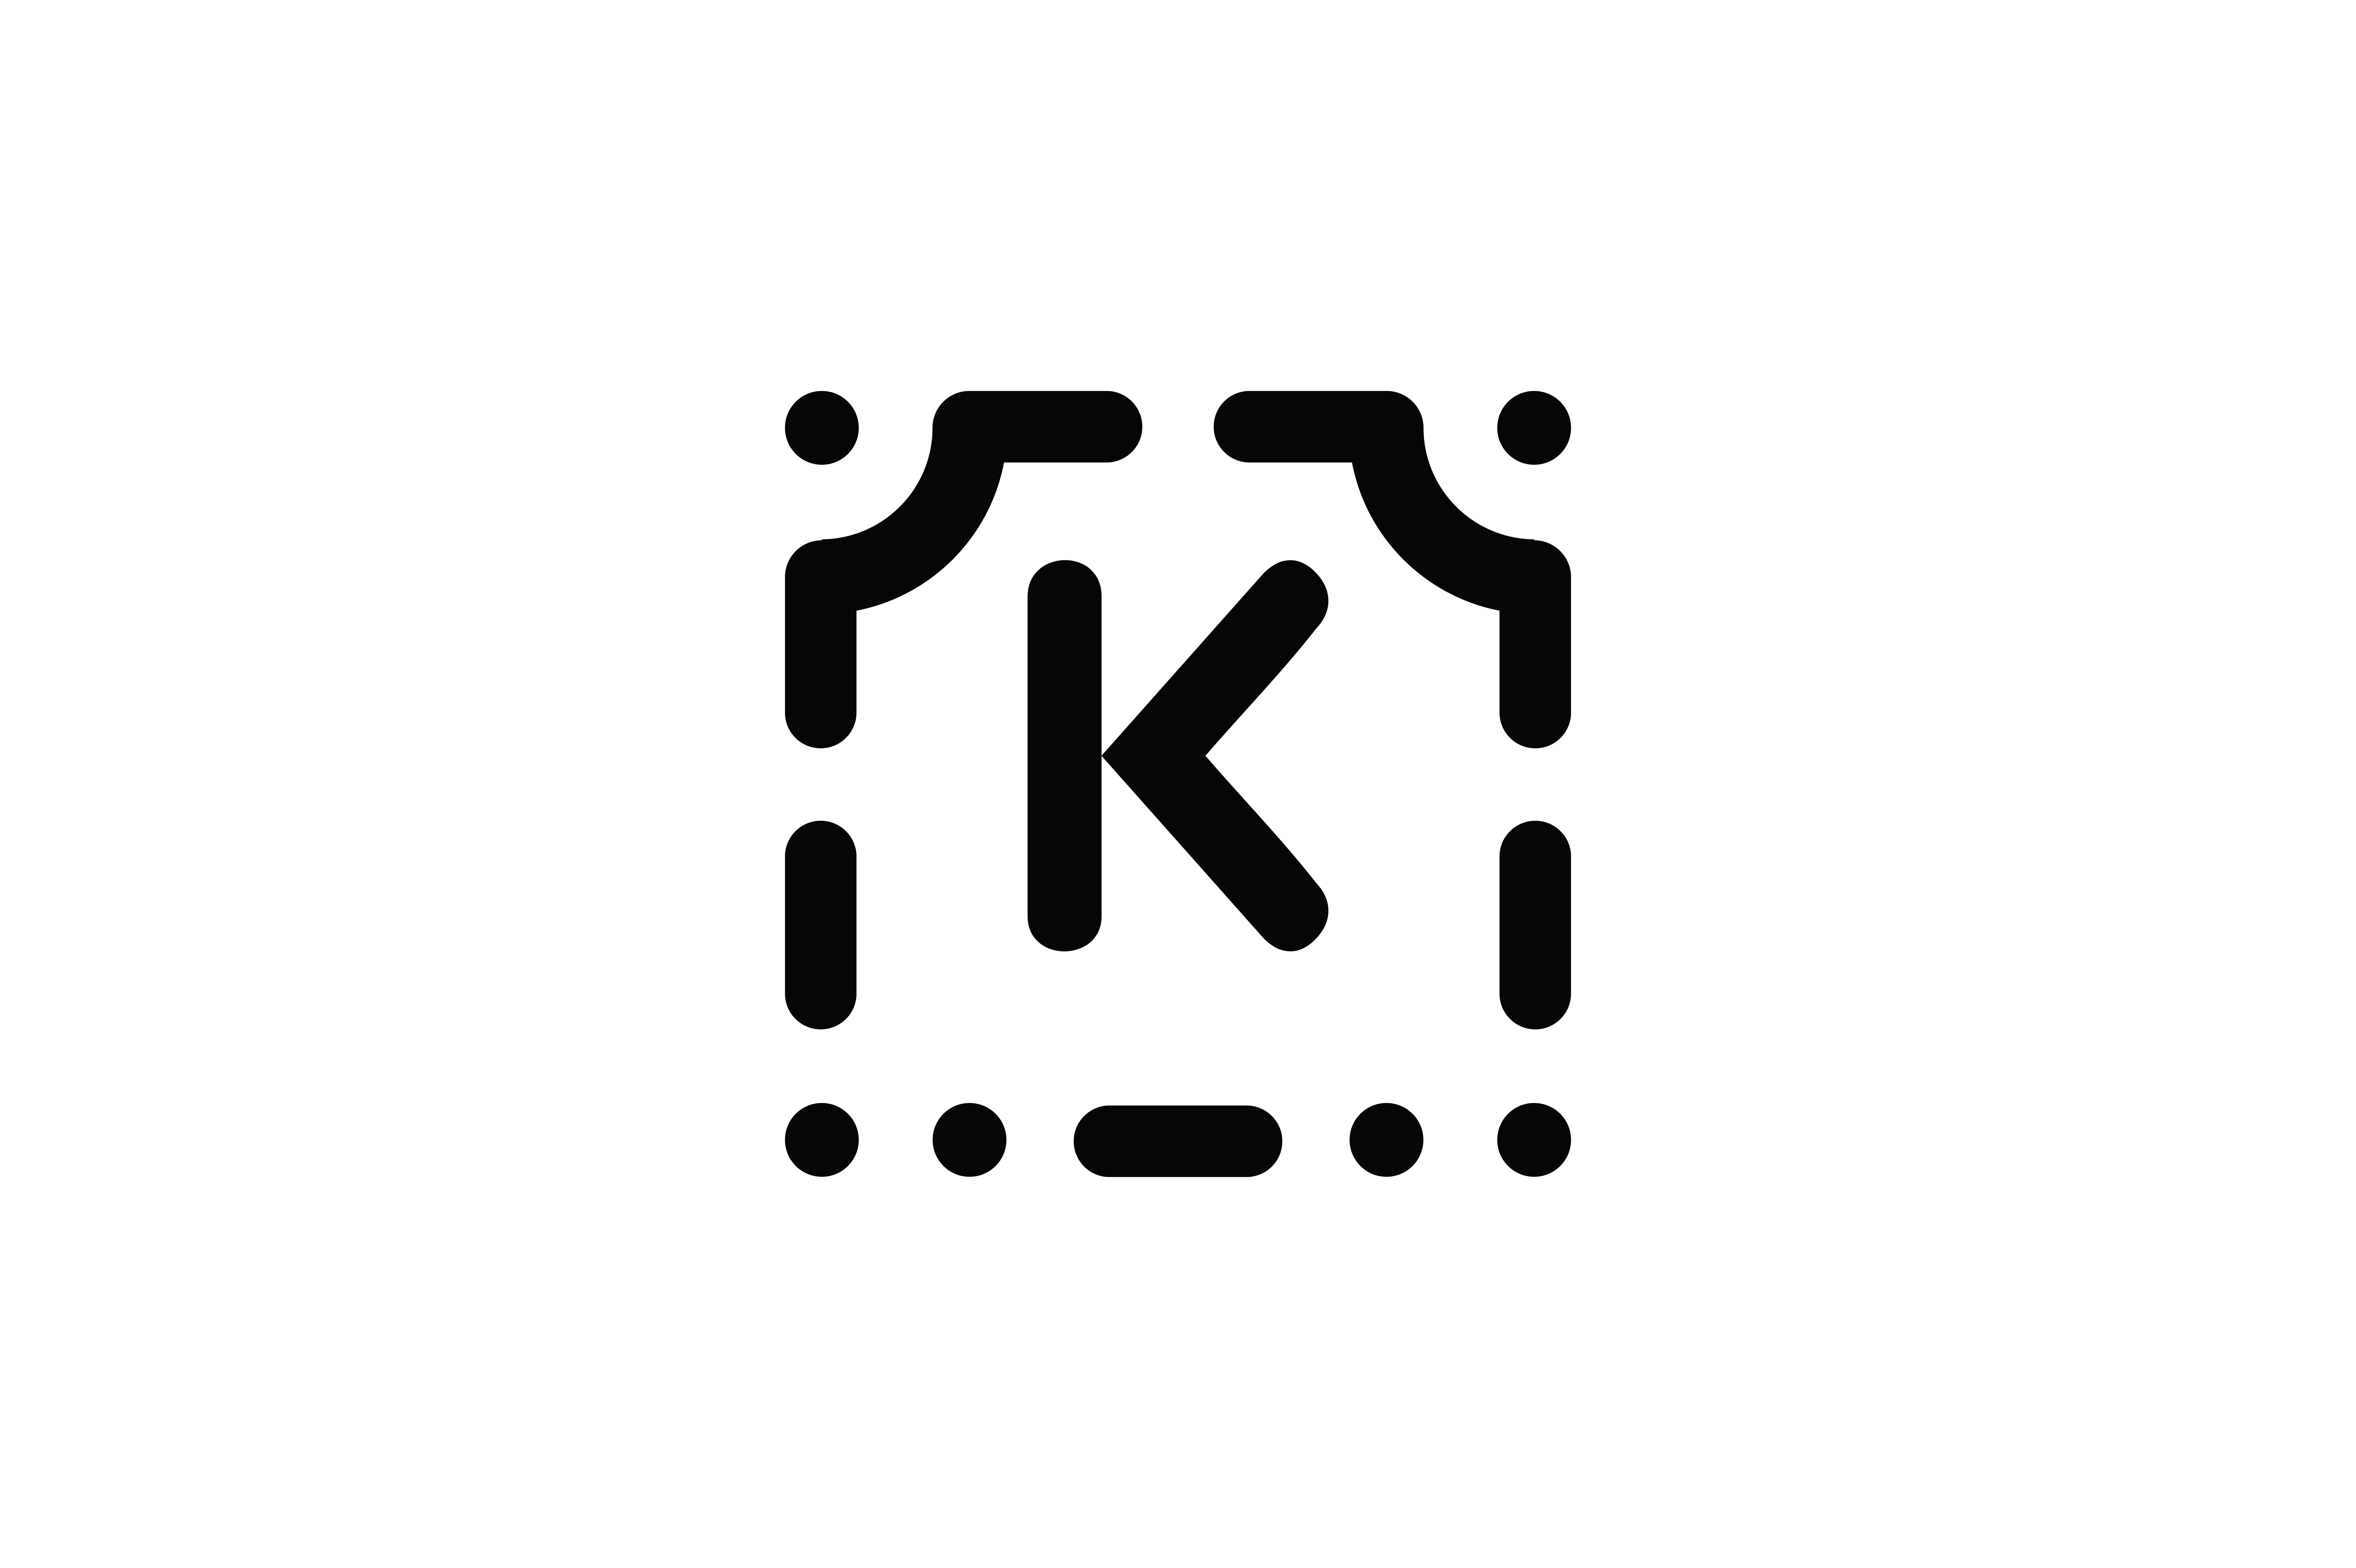 Download Free Letter K Icon Graphic By Newicon Creative Fabrica for Cricut Explore, Silhouette and other cutting machines.